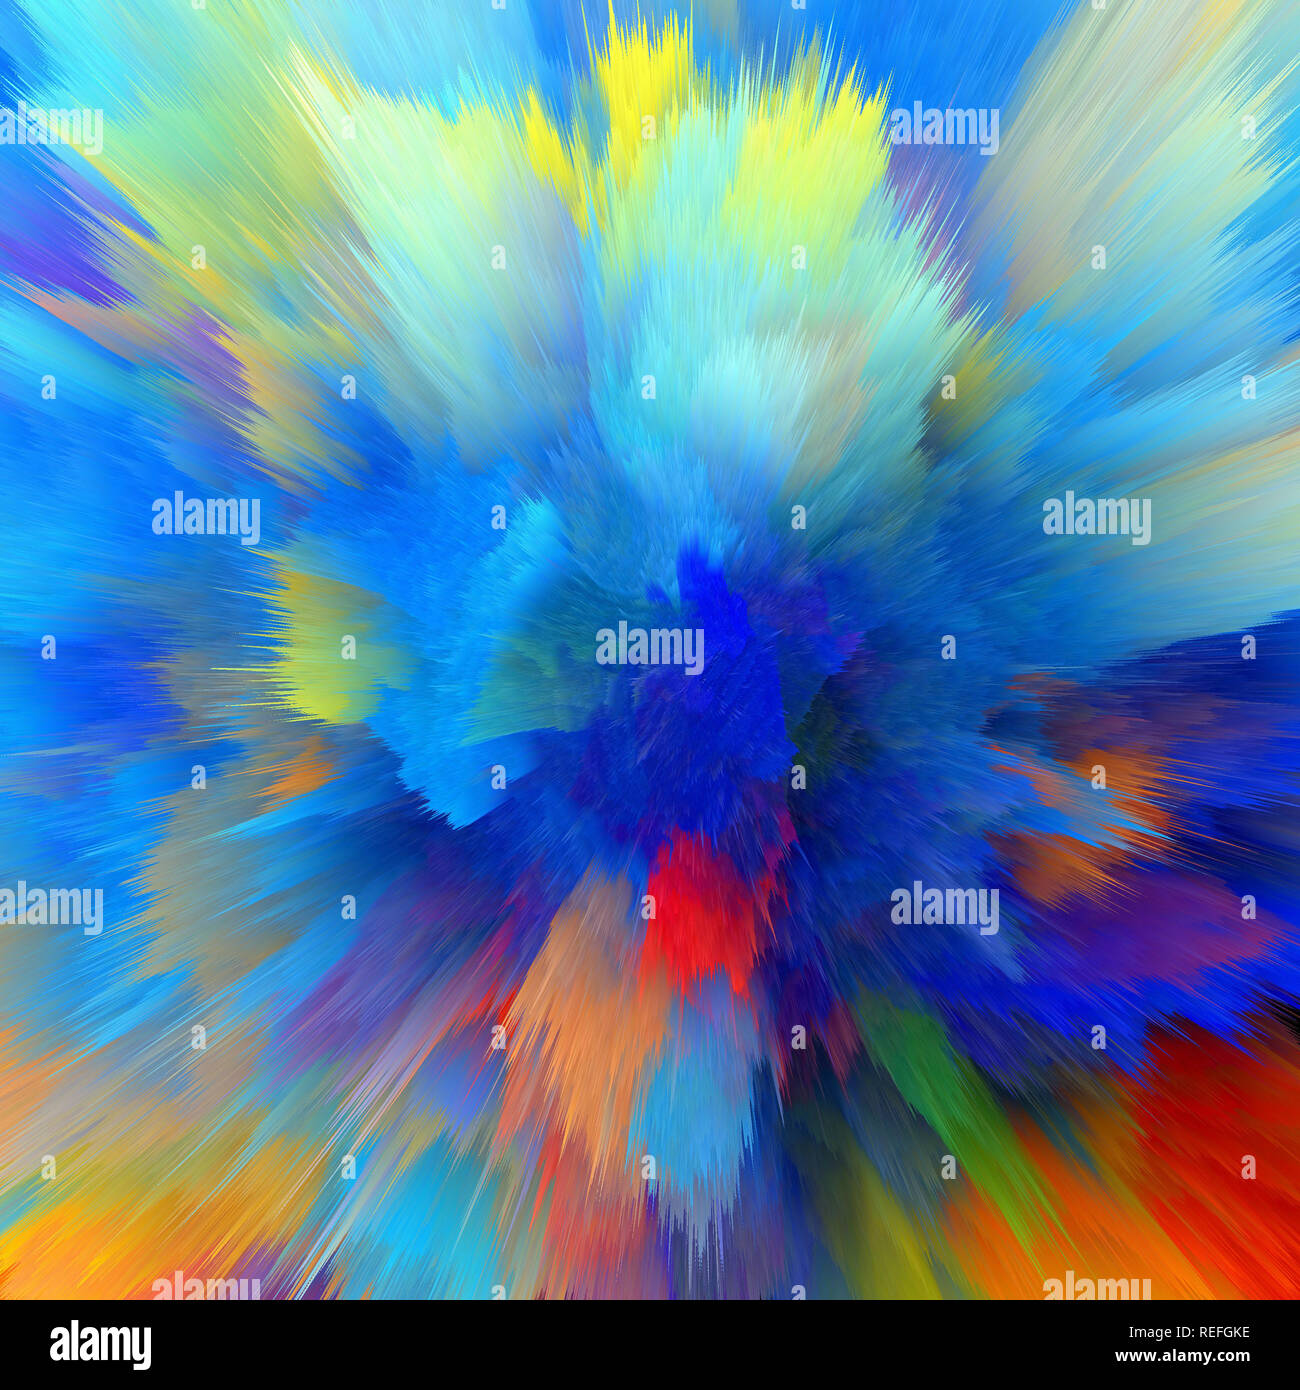 Abstract Texture Background Art Wallpaper Colorful Digital Painting Design Stock Big Size Watercolor And Oil Mix Pictorial Art Stock Photo Alamy